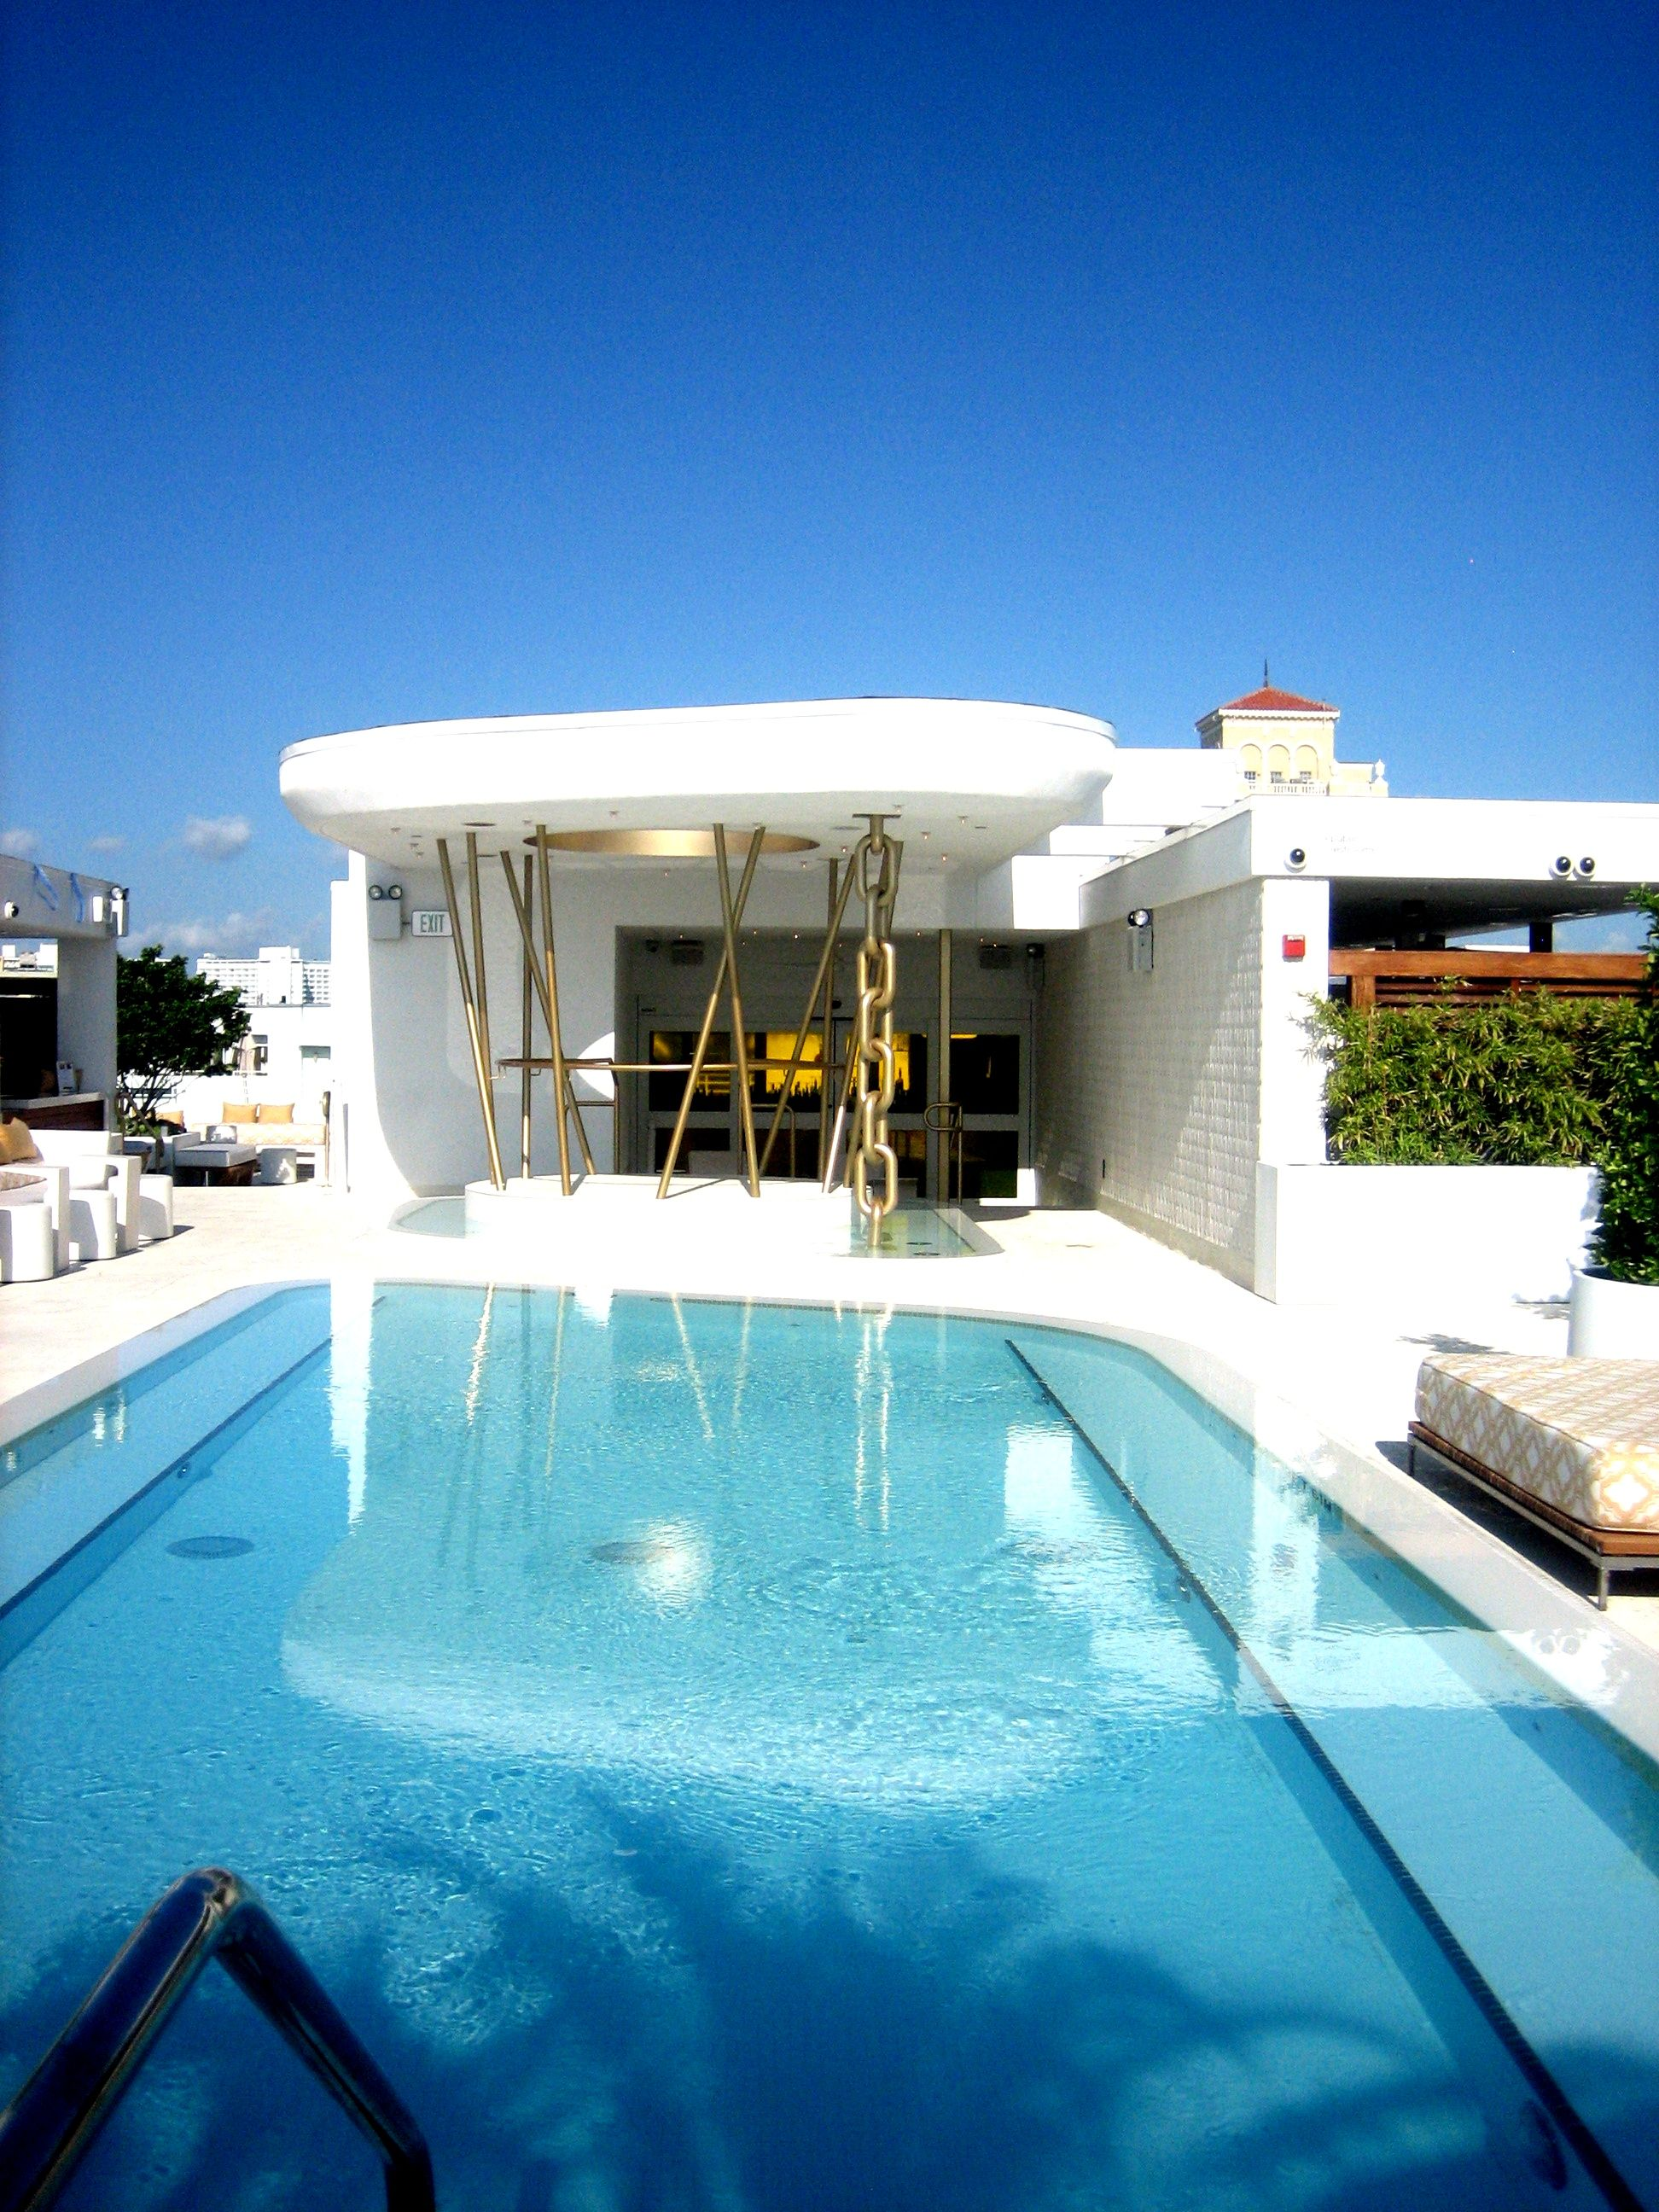 Rooftop Pool Hotel Miami Beach